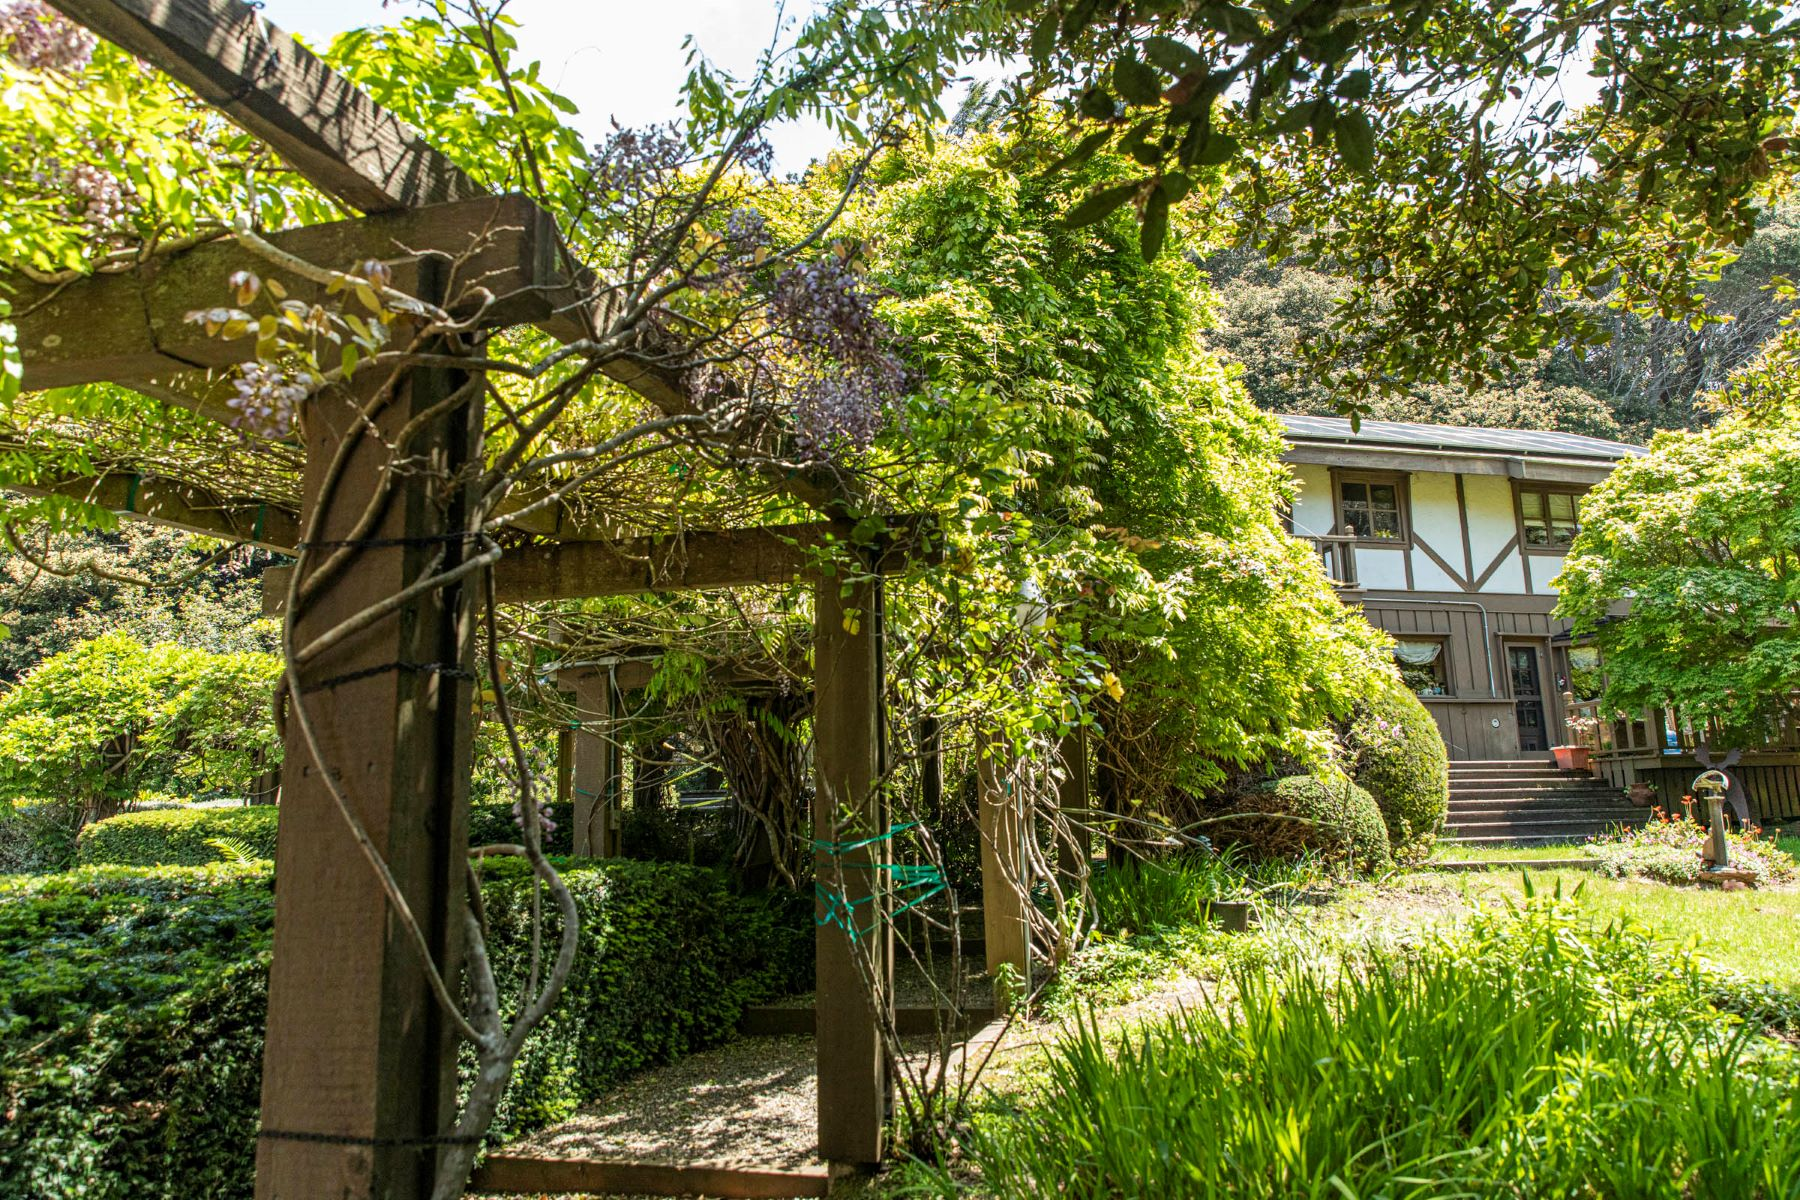 Single Family Homes for Sale at Maybeck Style Estate with Two Storybook Cottages 16651 Brookfield Drive Fort Bragg, California 95437 United States